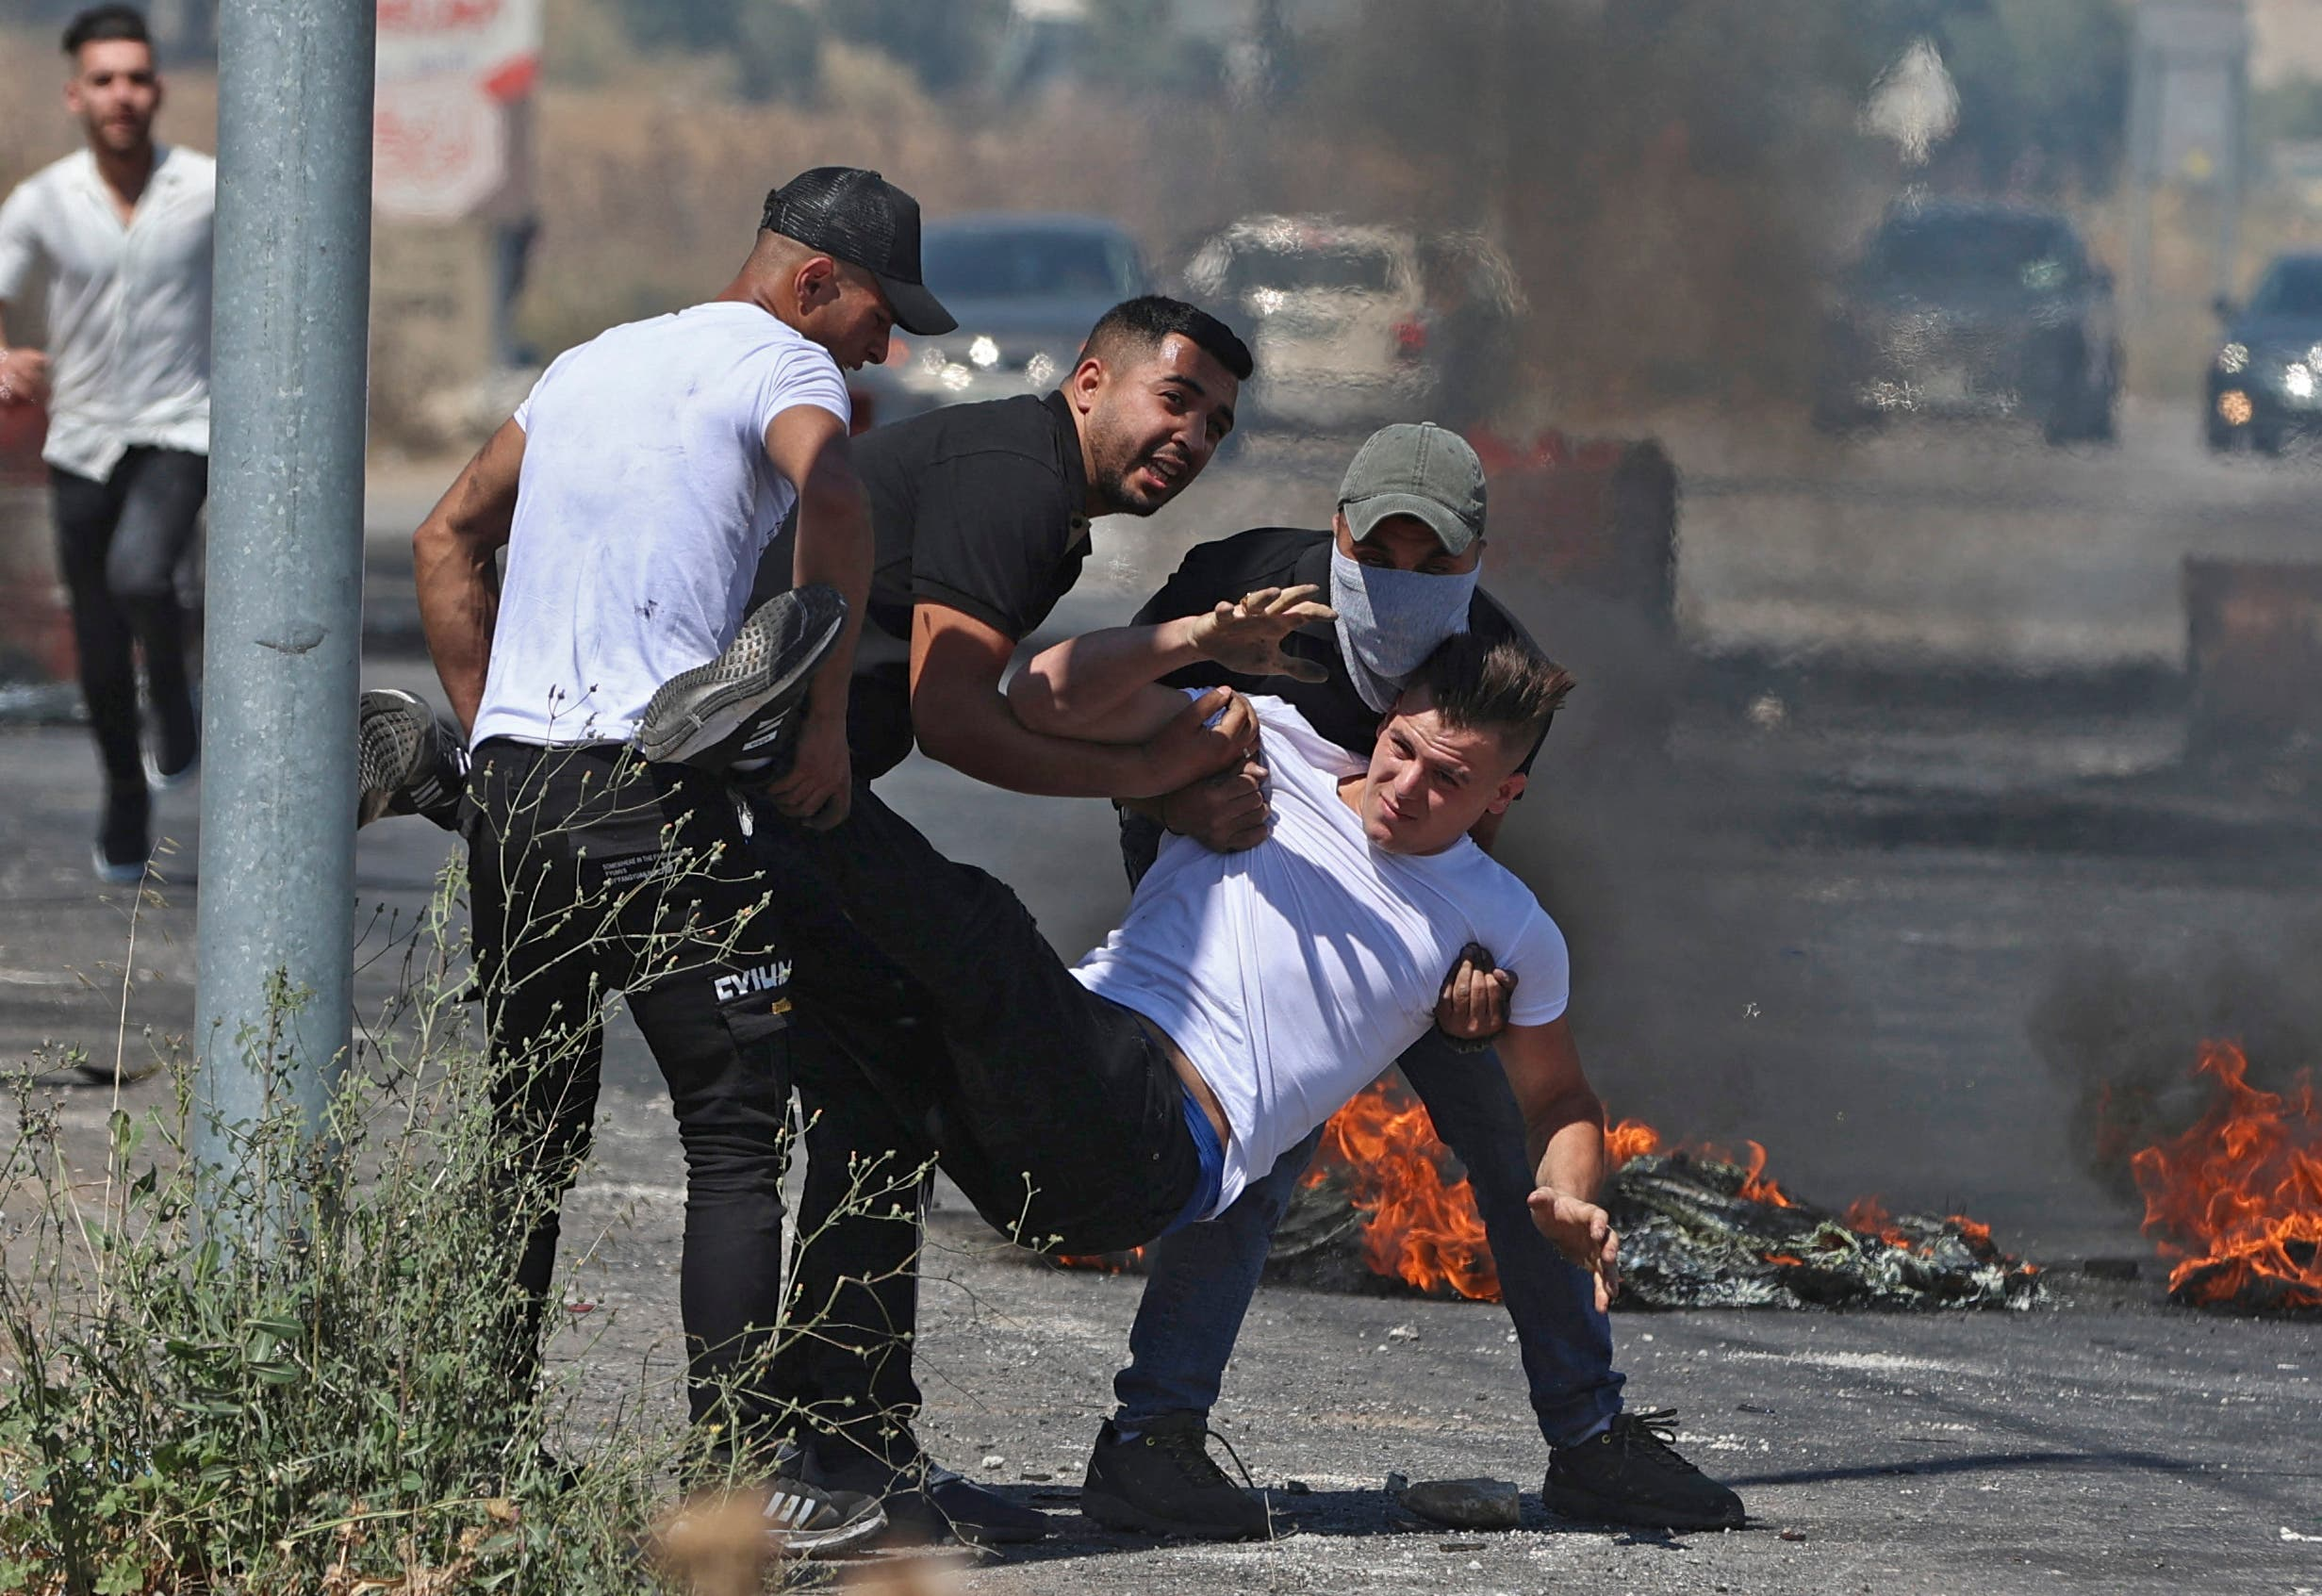 Palestinians carry an injured man to safety, after Israeli security forces launch attacks near the Hawara checkpoint south of the occupied West Bank city of Nablus, on May 14, 2021. (AFP)